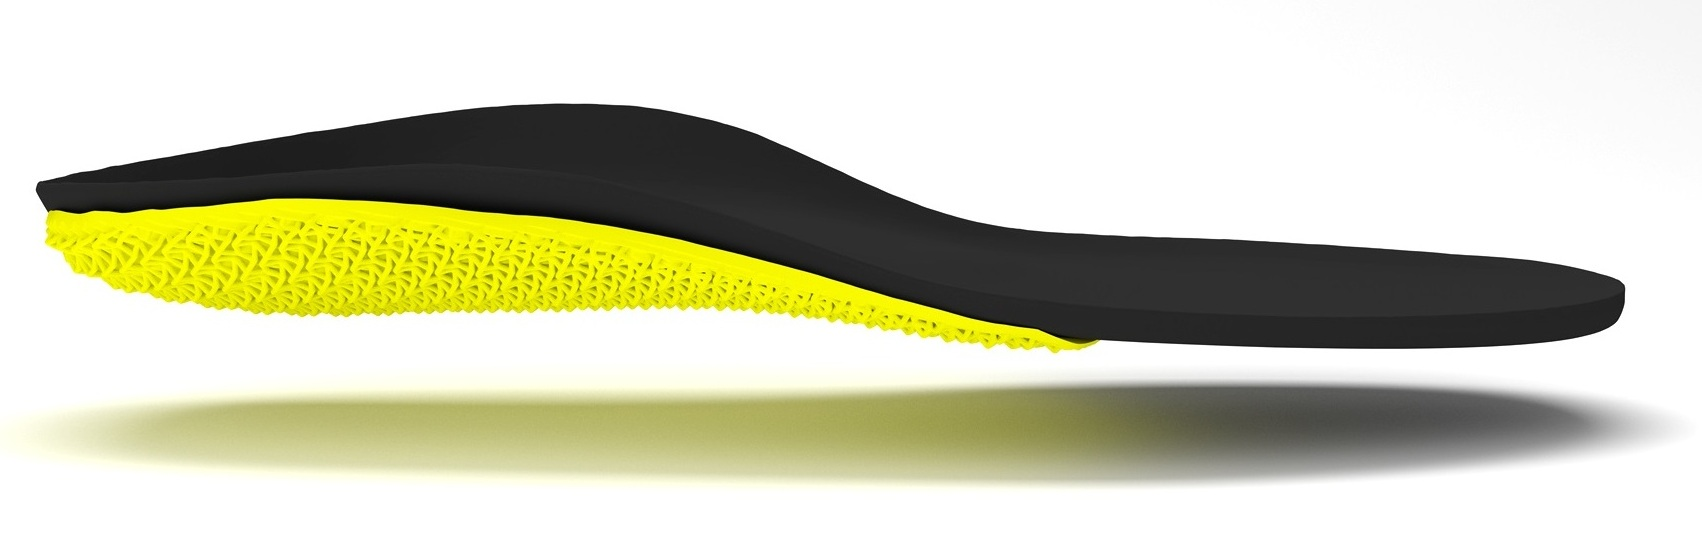 2 small black sole.jpg cropped.jpg